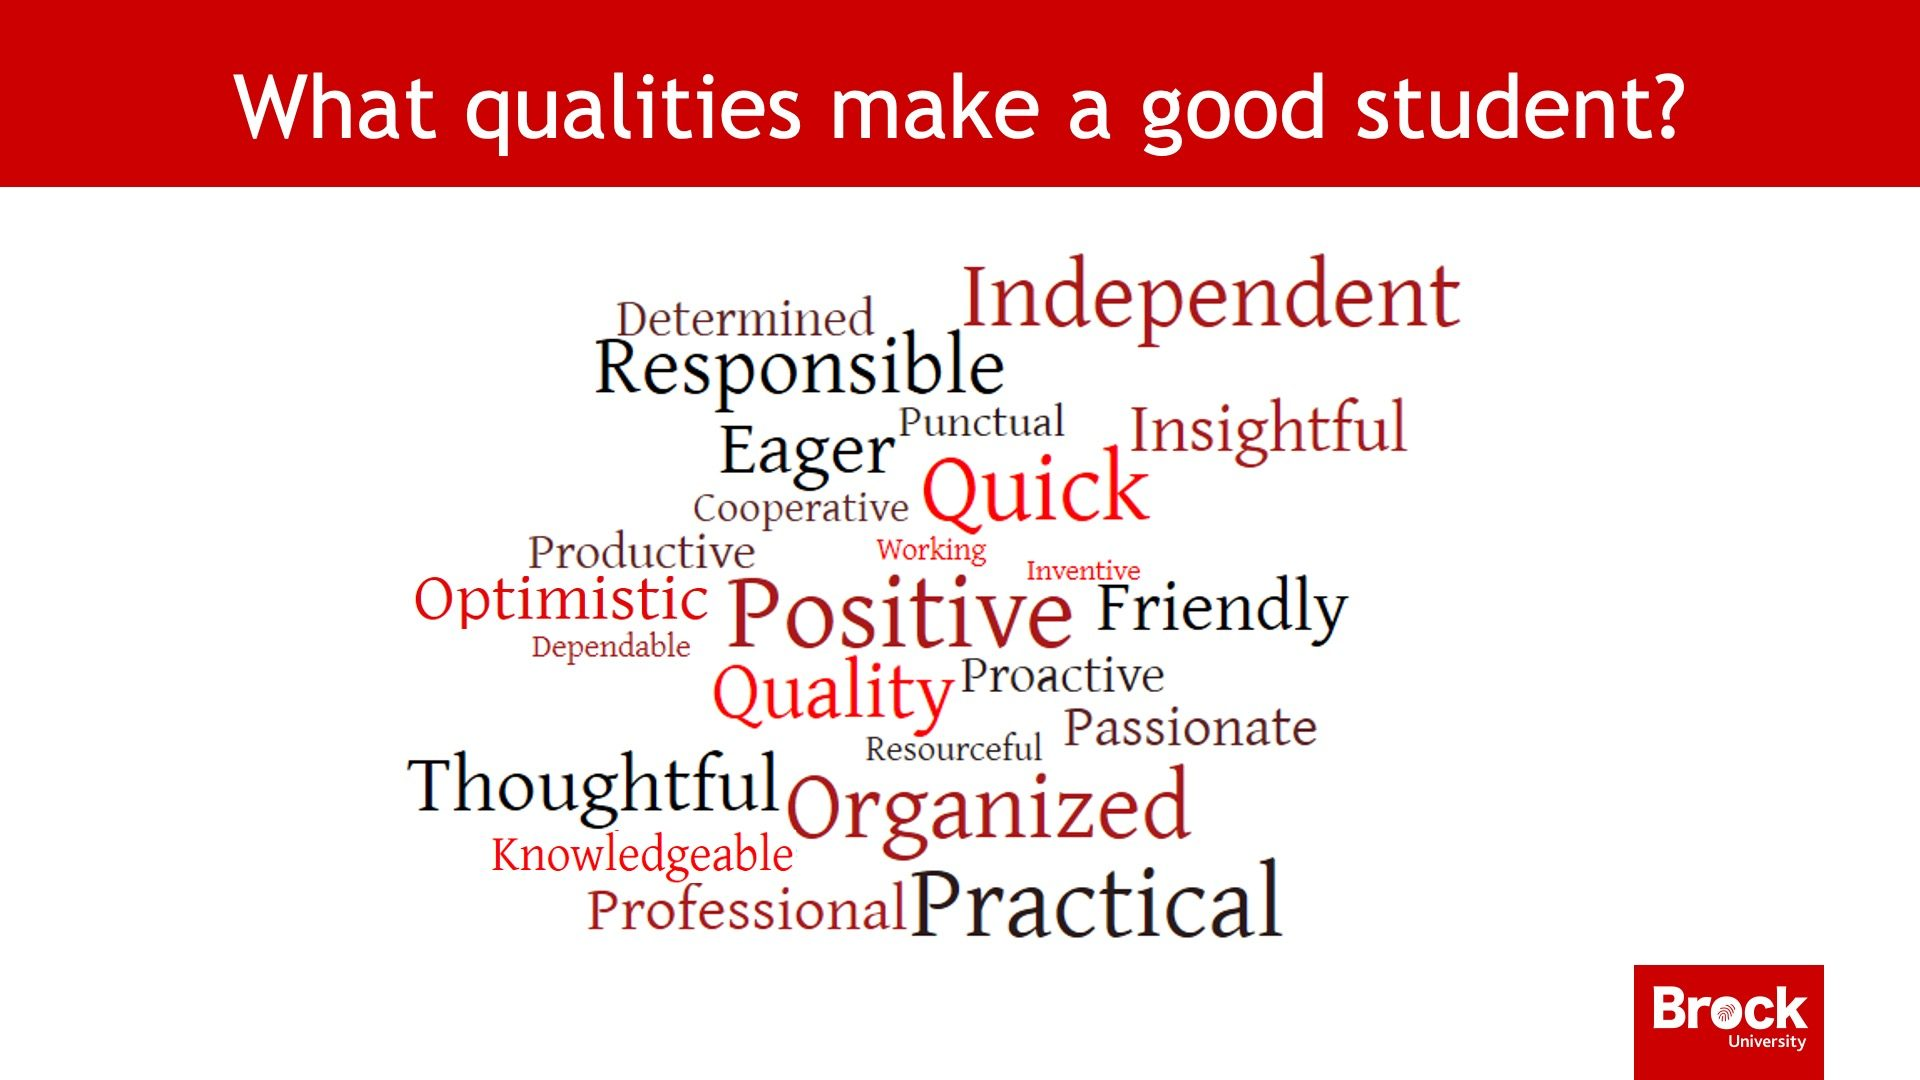 What qualities make a good student?